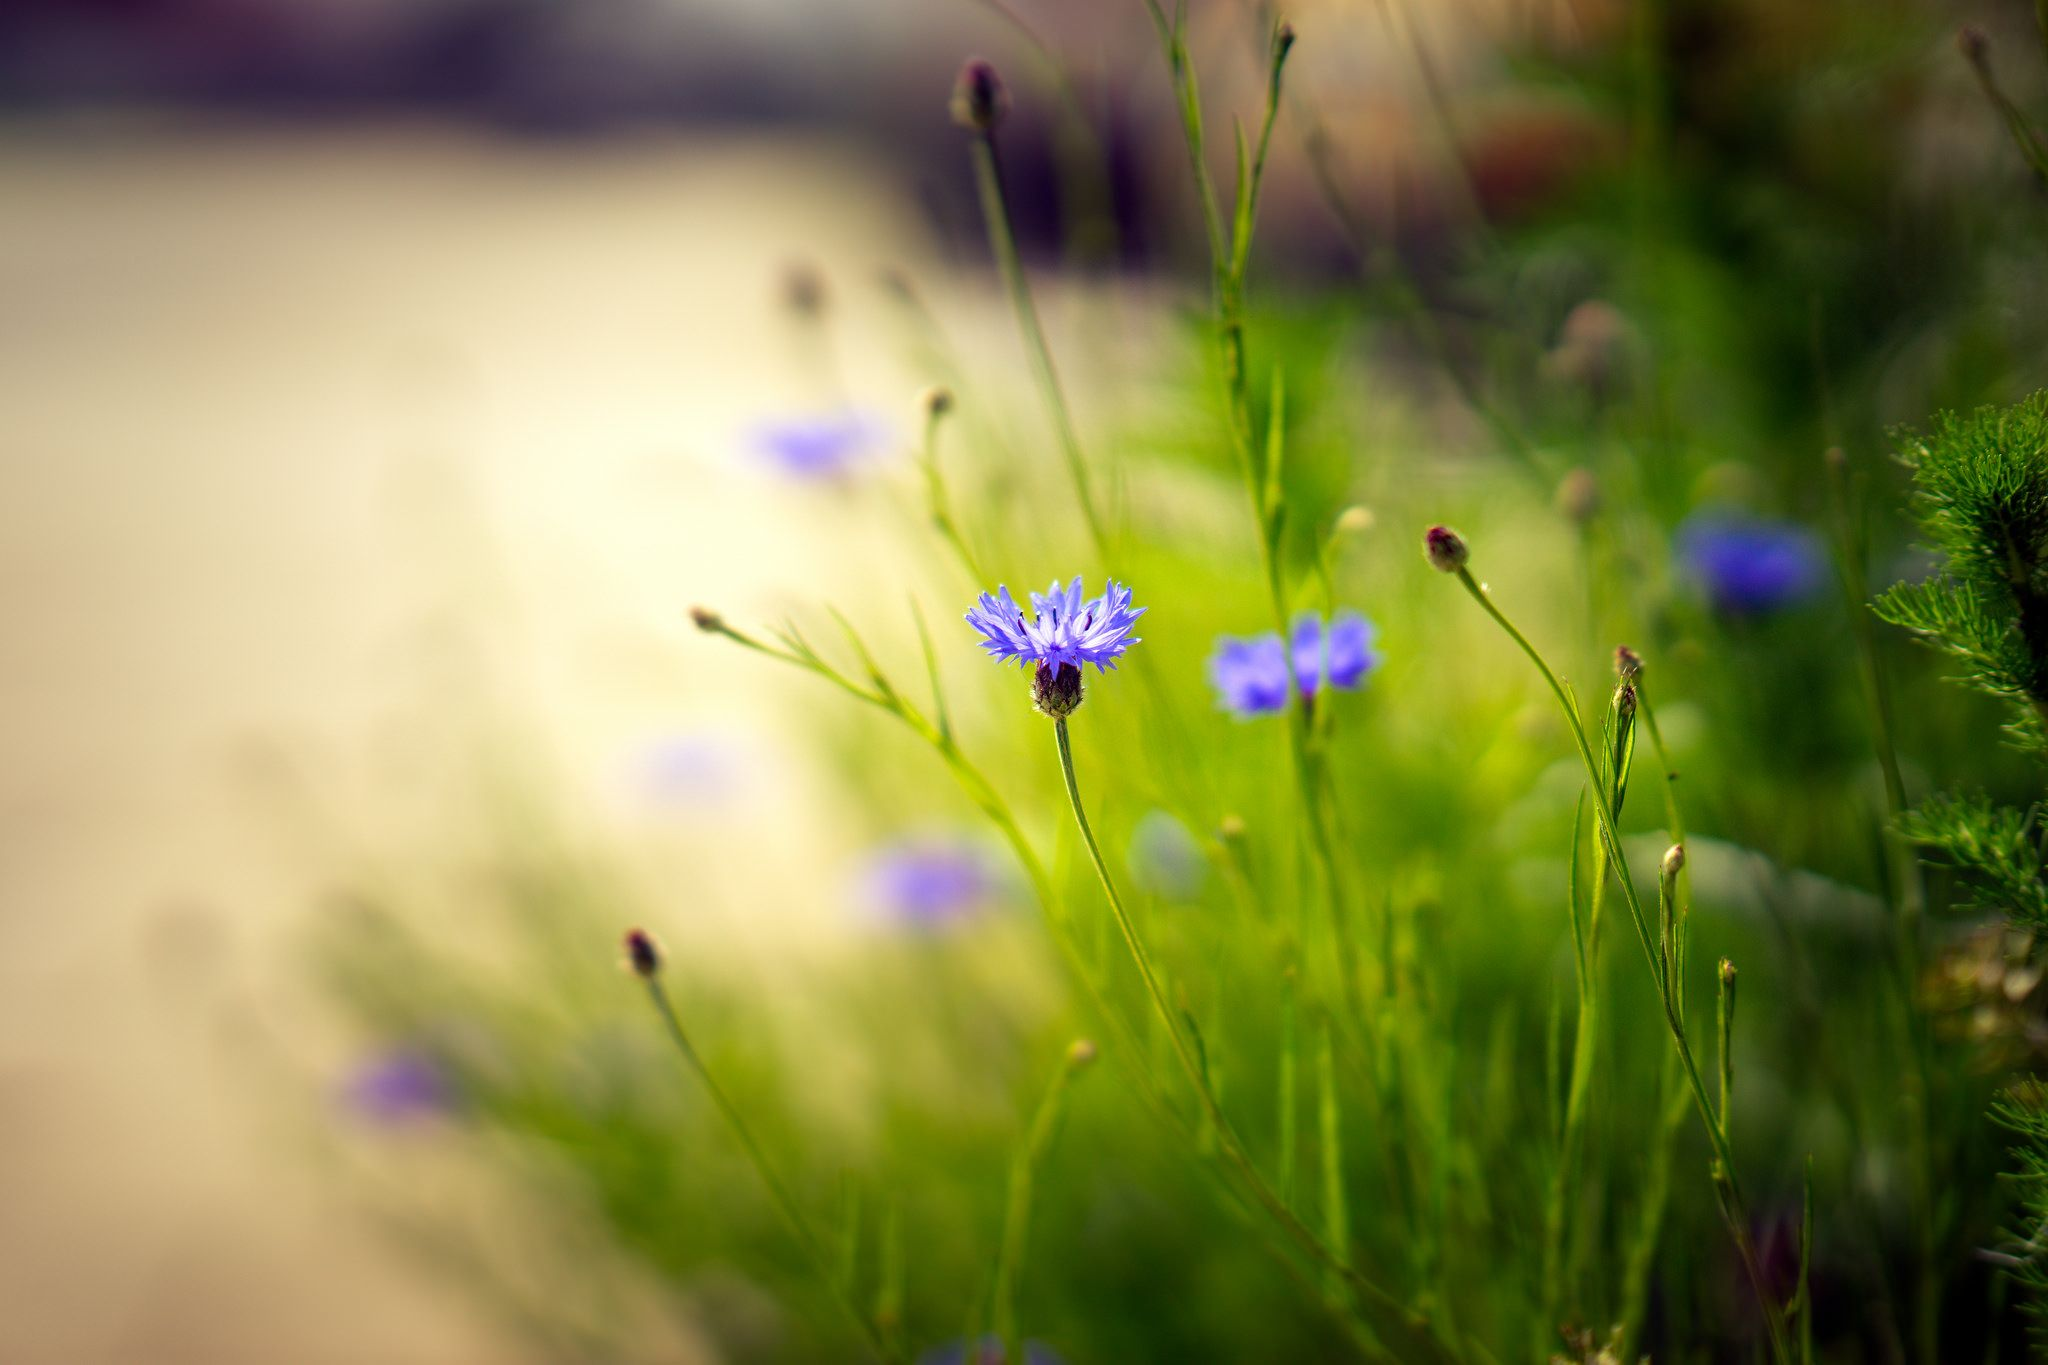 Soft Focus Purple Wild Flowers Photography Full Hd Wallpaper Desktop